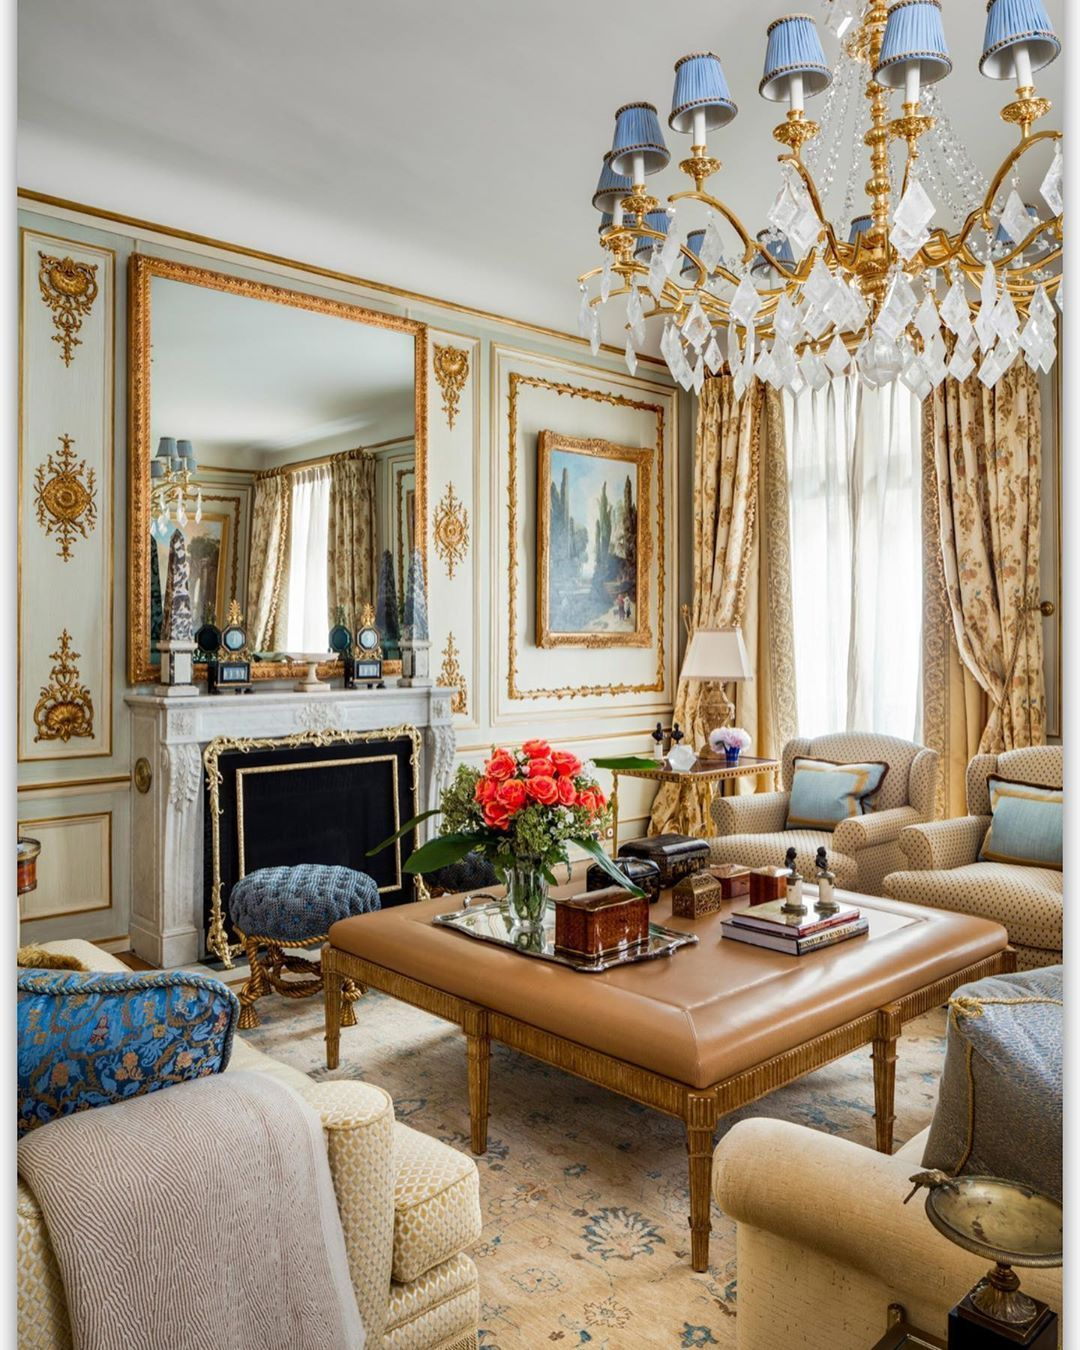 Traditional Victorian Colonial Living Room By Timothy Corrigan With Images: Dreamy Room, Room Design, Parisian Interior